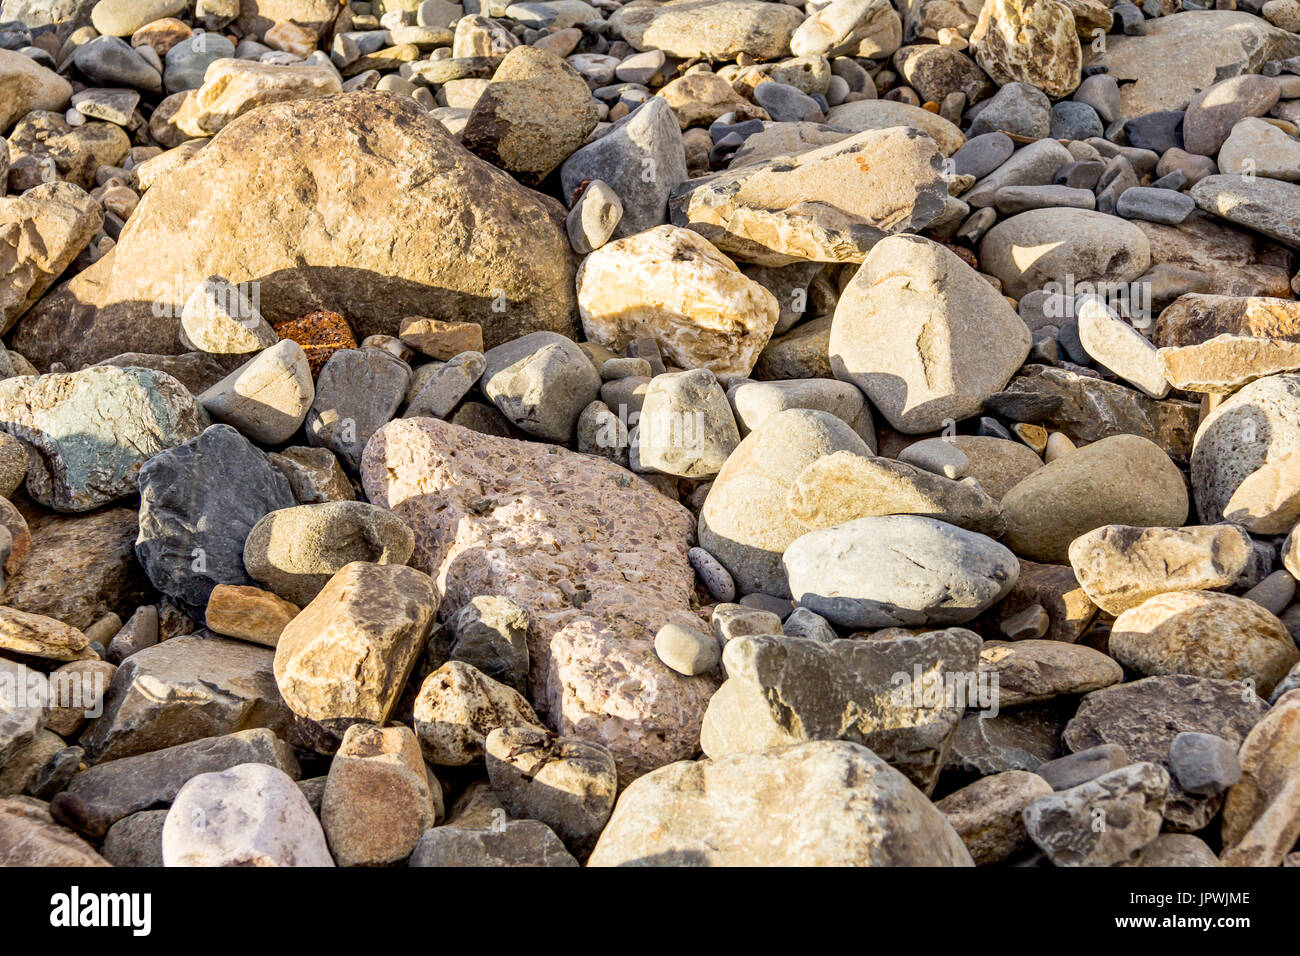 A Rocky Beach at Llanfairfechan, north Wales.  Image was taken on the 14 September 2013 on a bright sunny day. - Stock Image